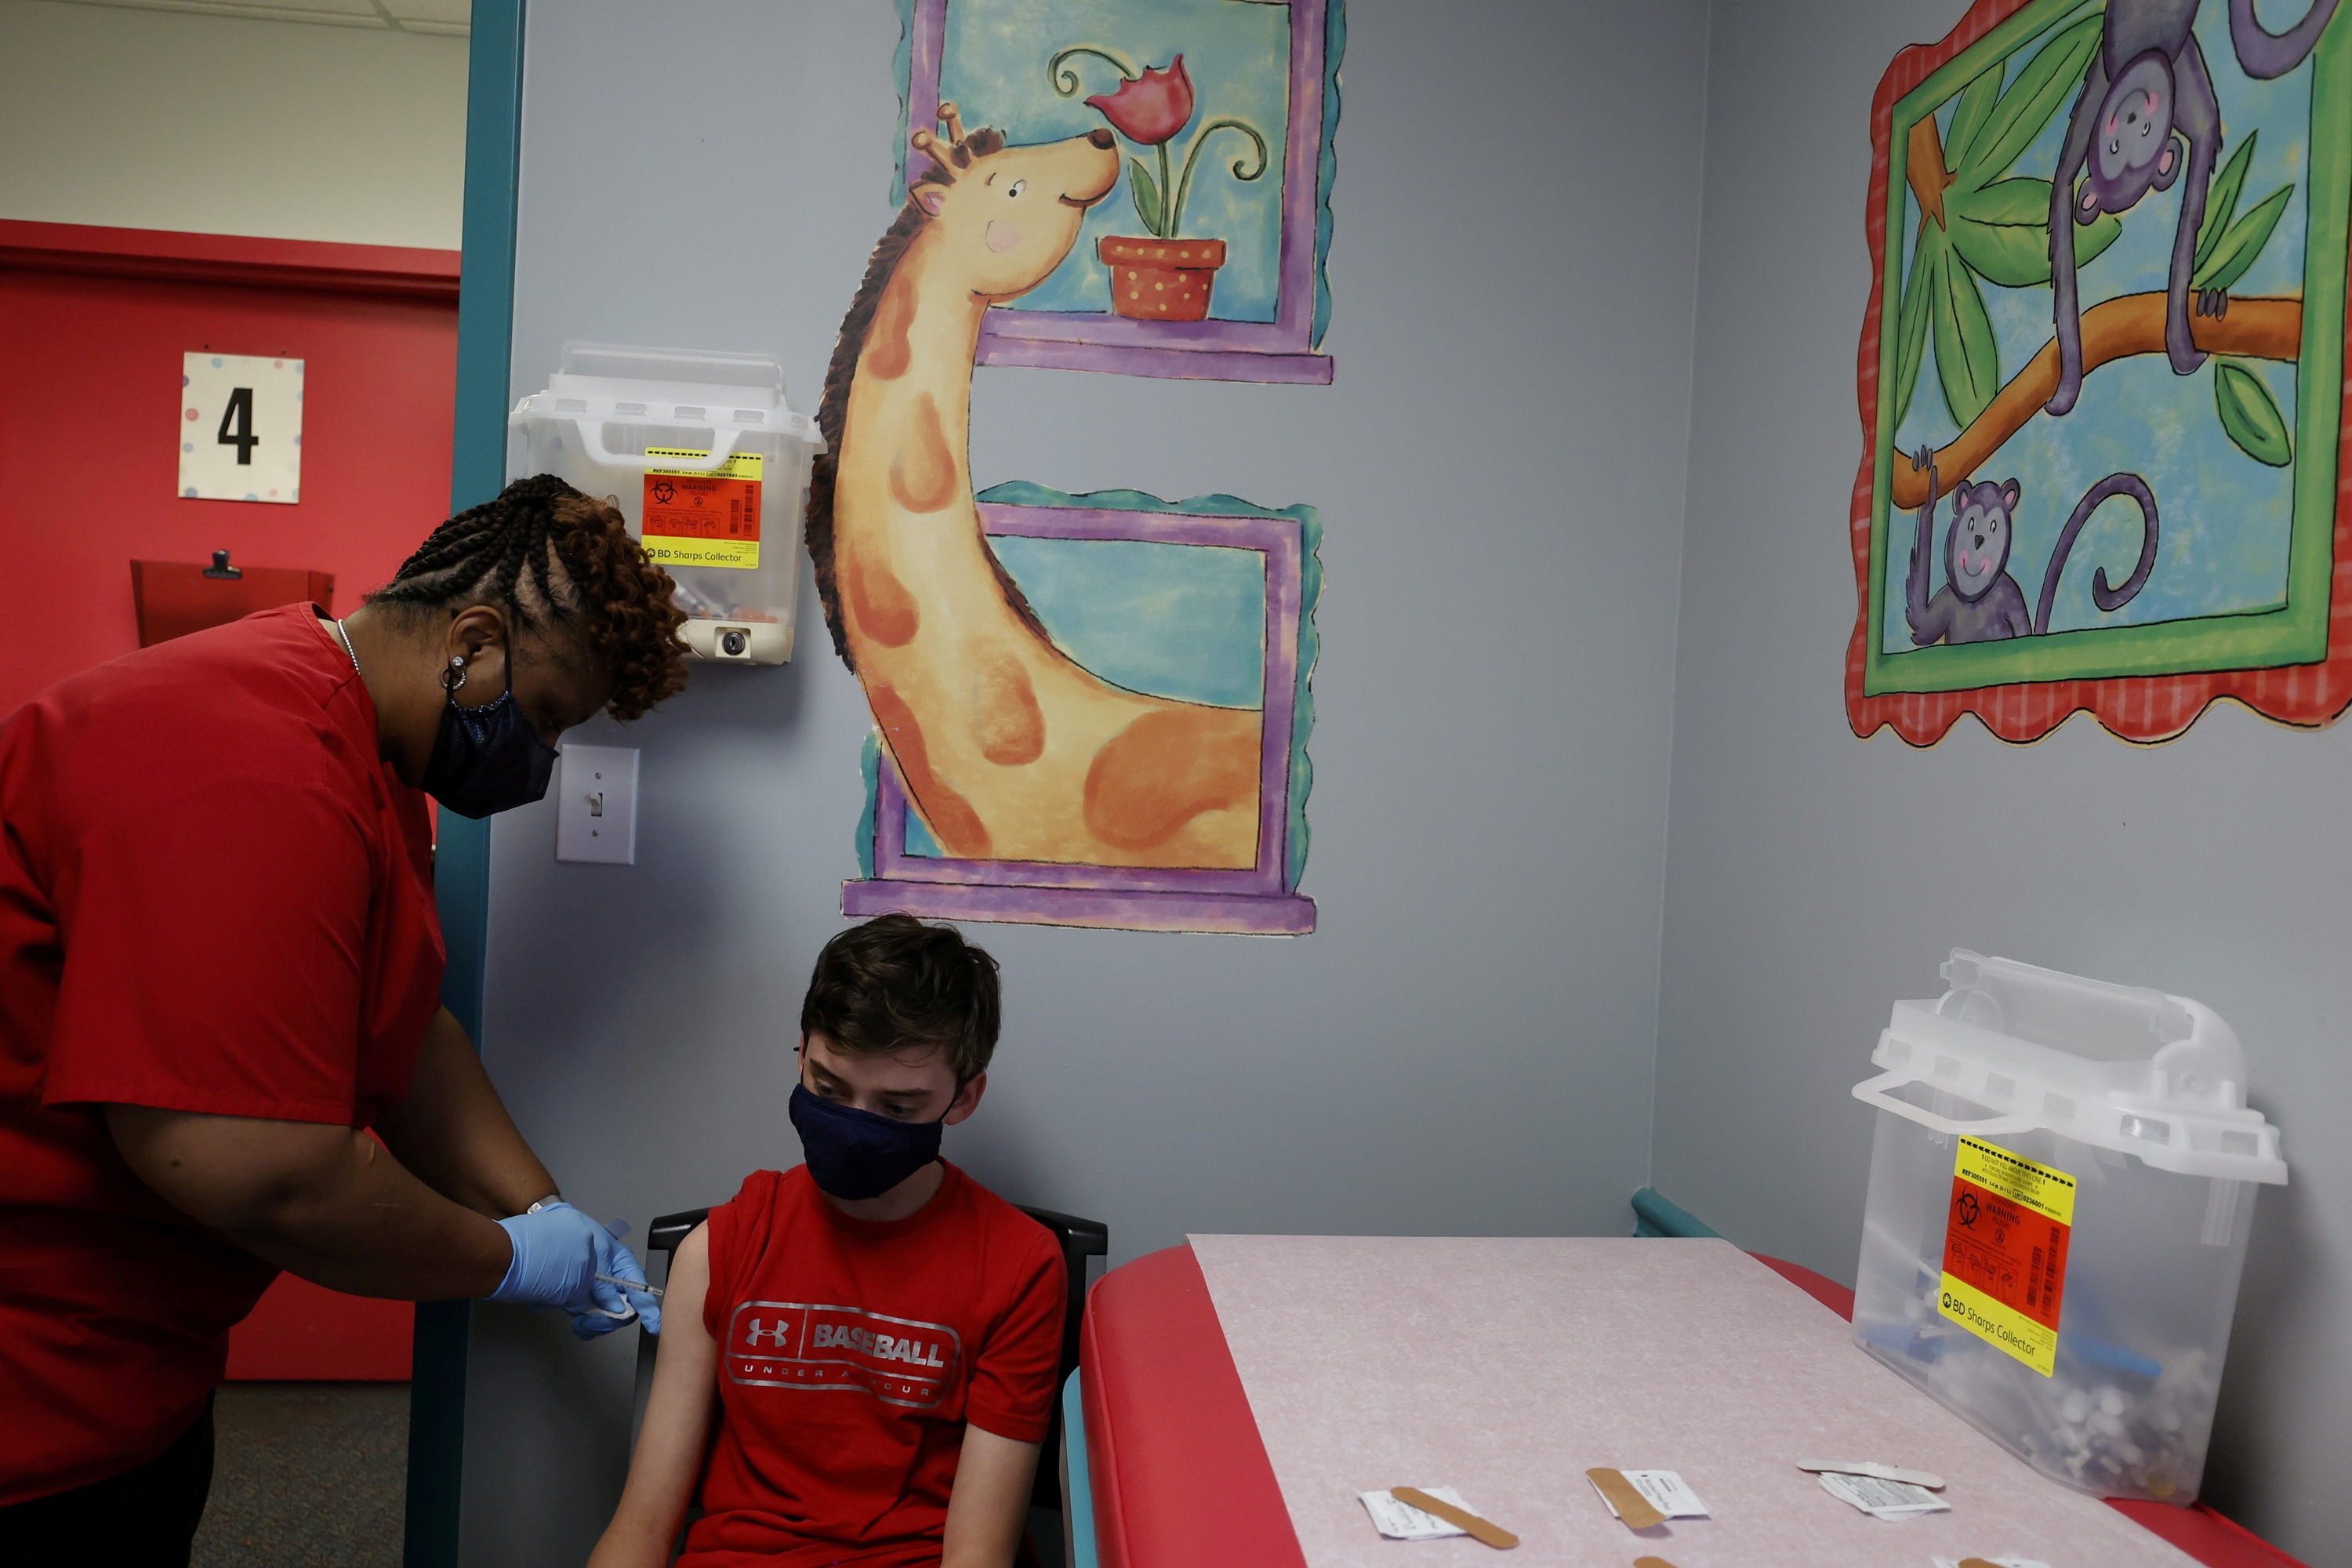 Aidan Mohl, 13, is inoculated with Pfizer's vaccine by Registered Medical Assistant Melissa Dalton at Dekalb Pediatric Center in Decatur, Georgia, May 11, 2021.  REUTERS/Chris Aluka Berry/File Photo